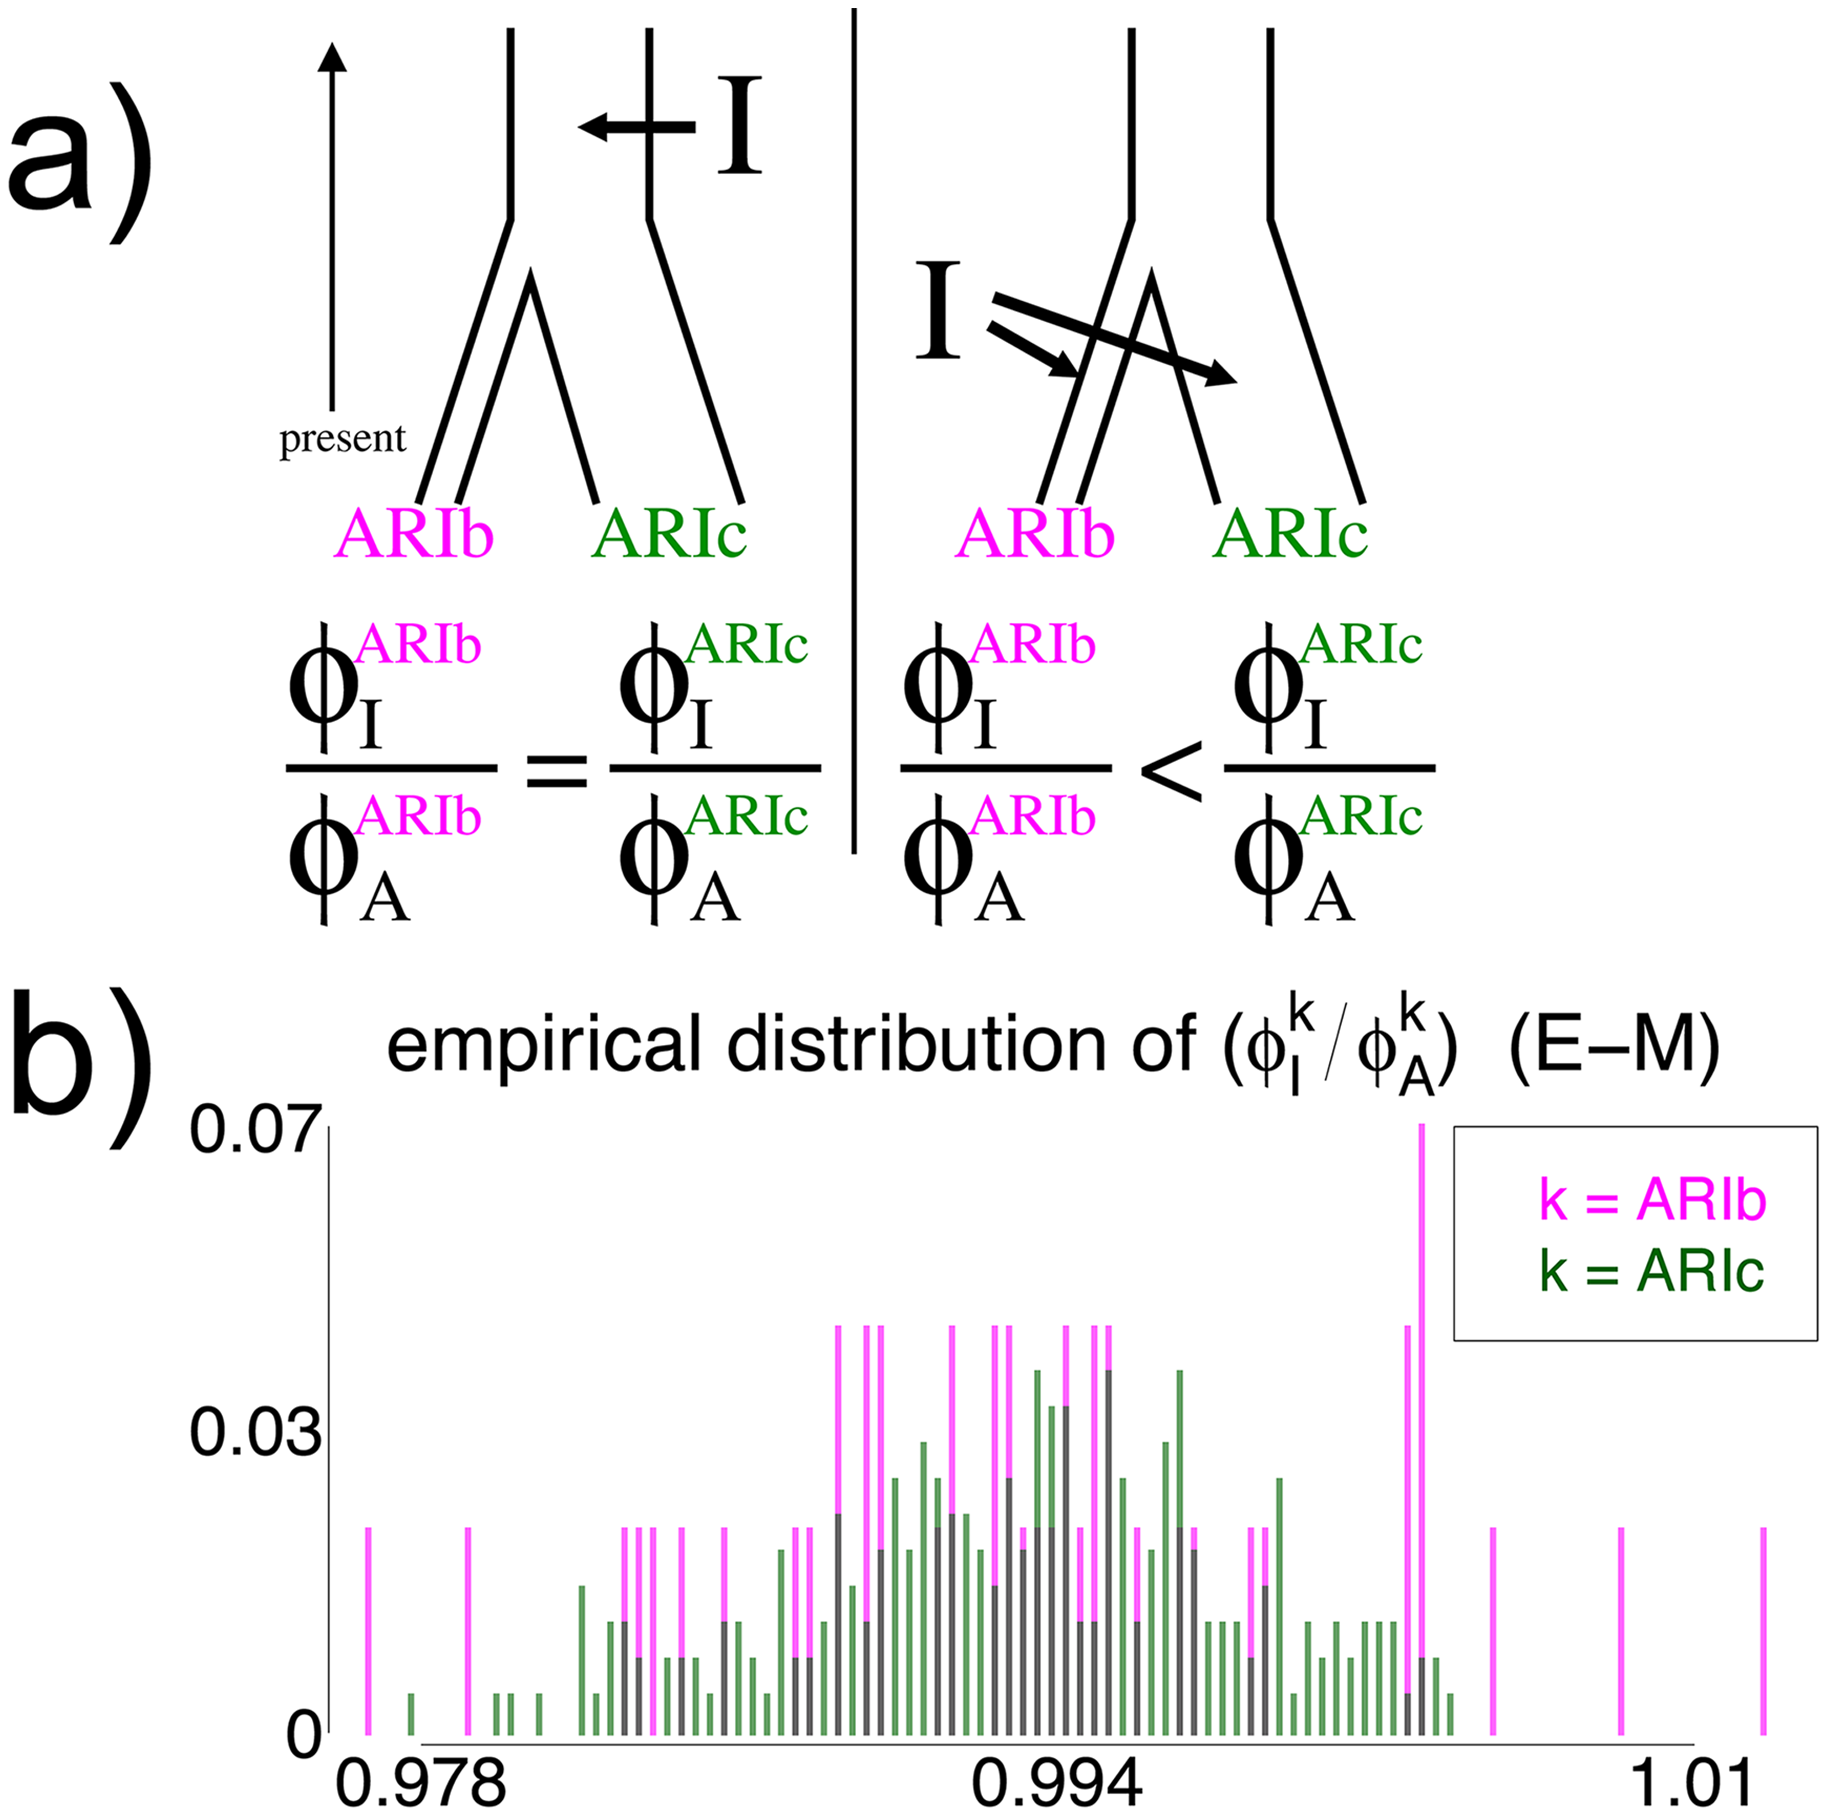 Effect on genetic similarity of two possible timings of DNA introgression.